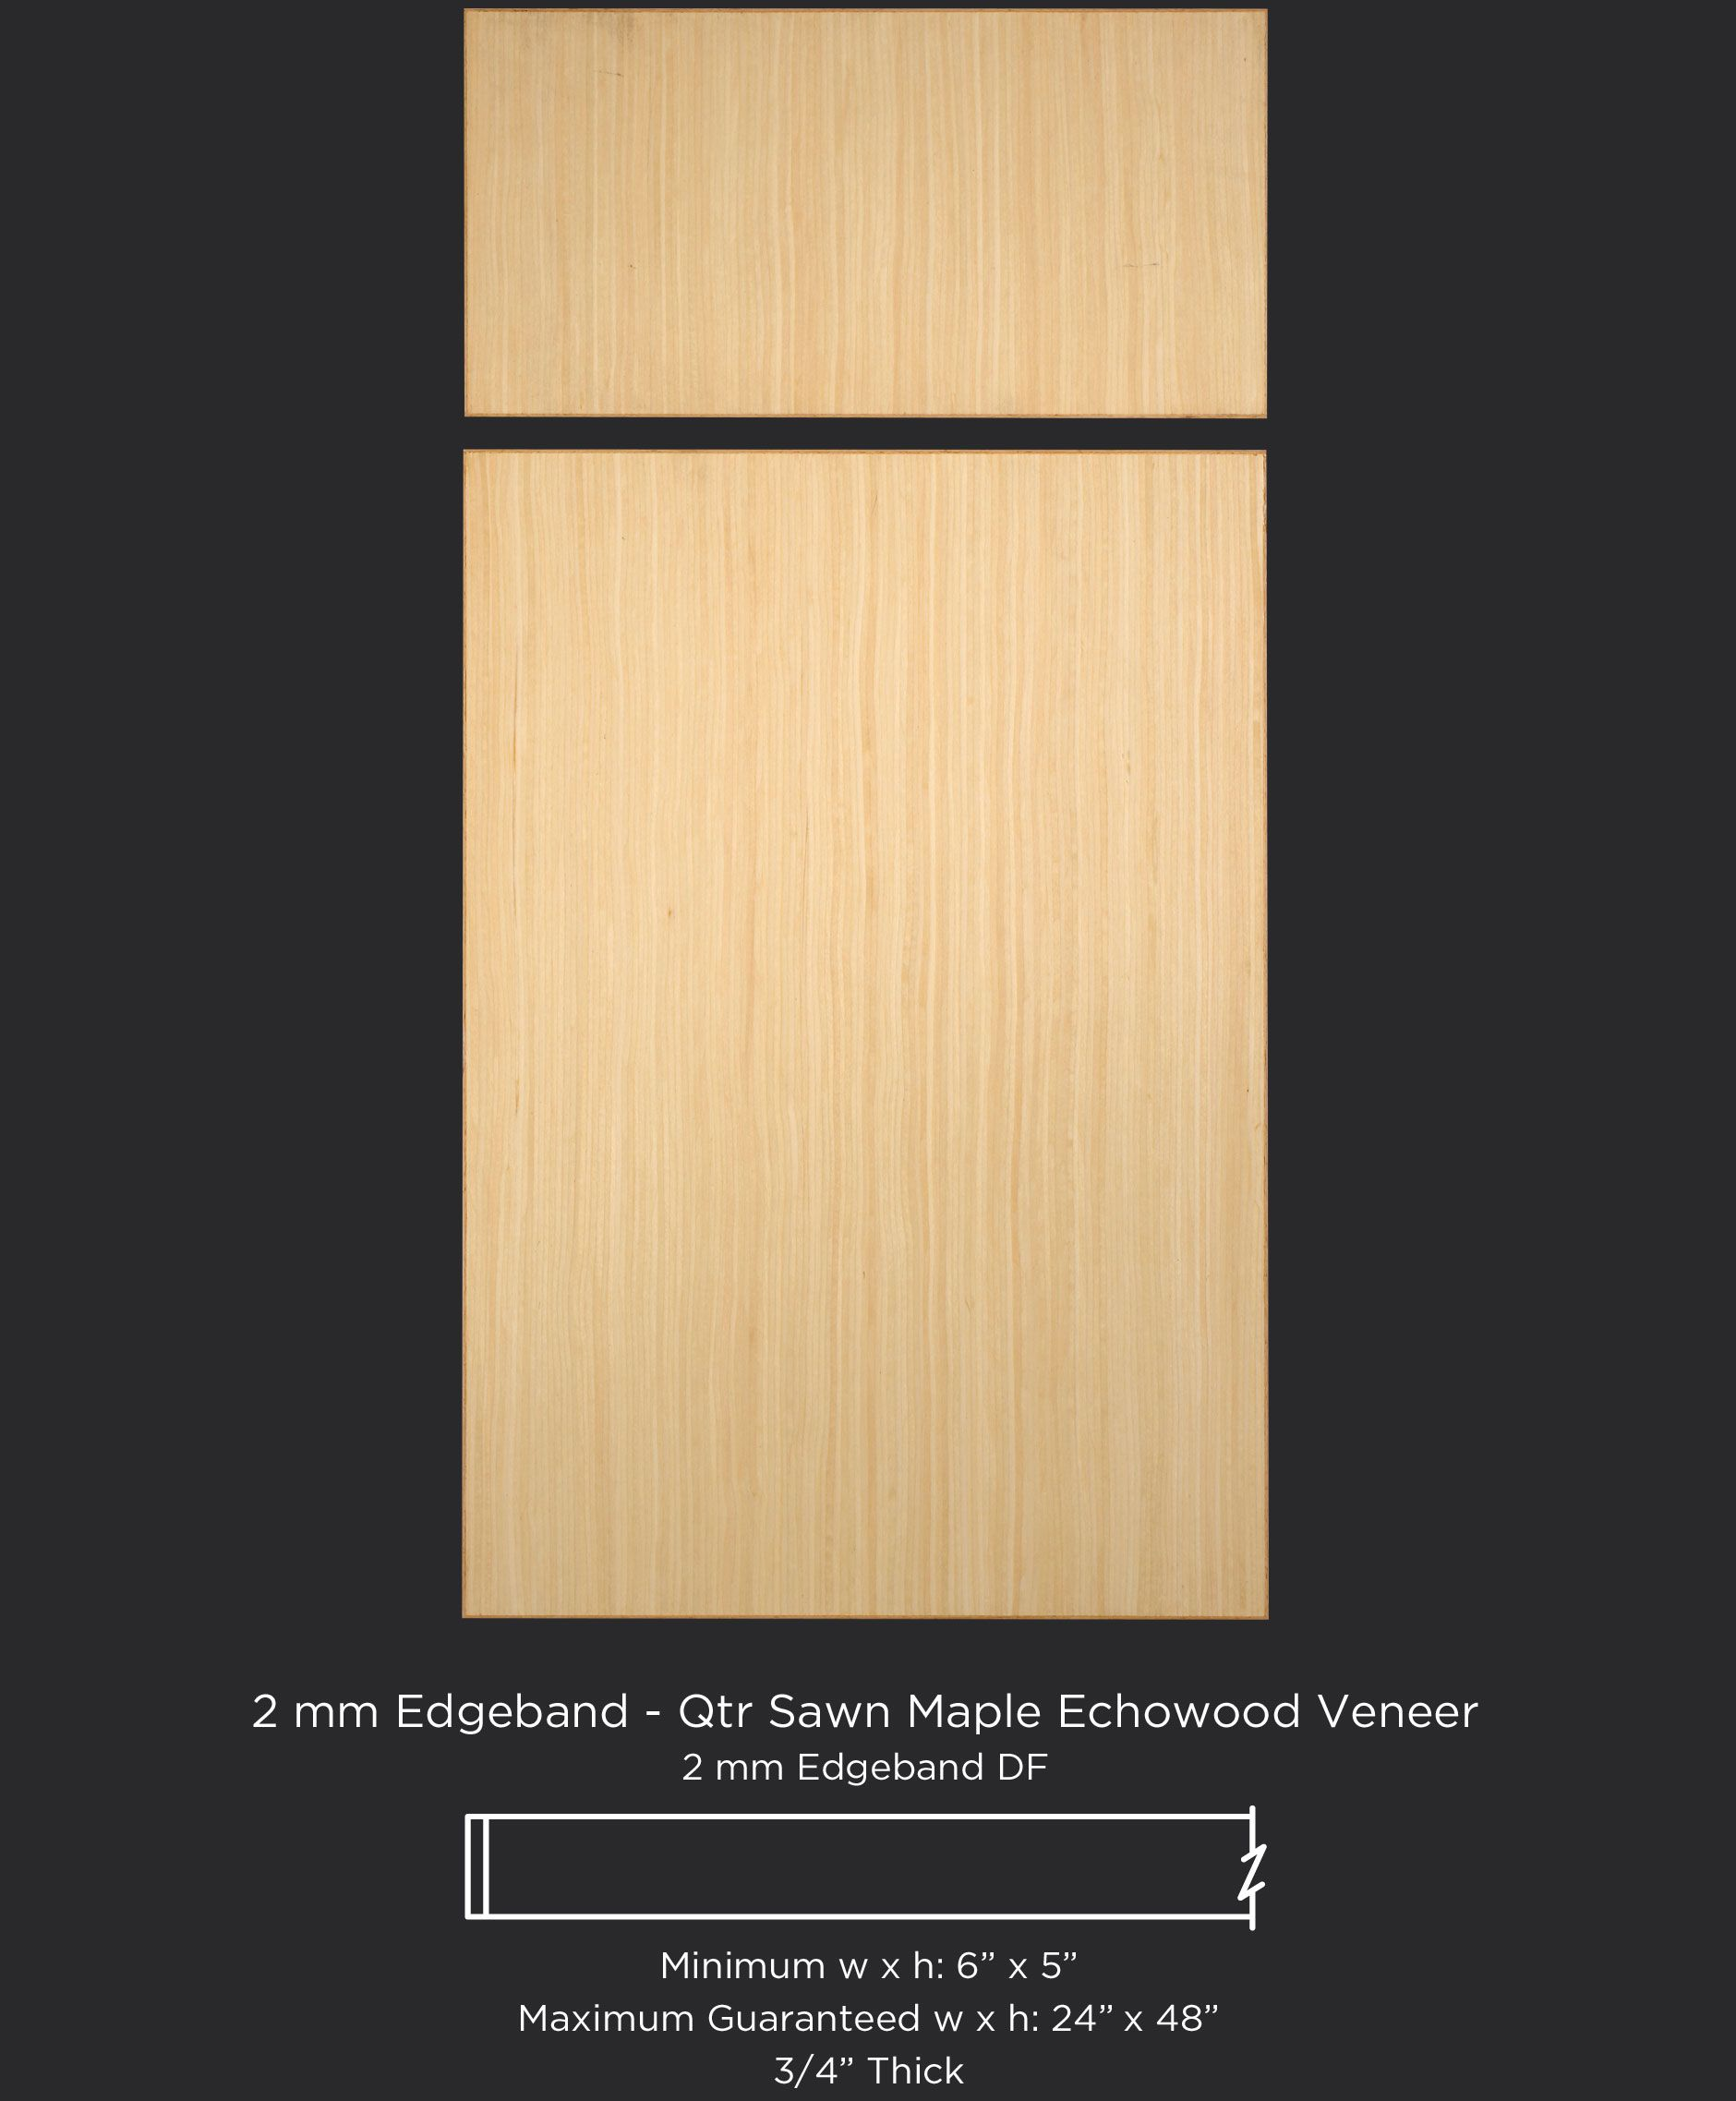 Contemporary Cabinet Doors light-colored, contemporary cabinet door in quarter sawn maple